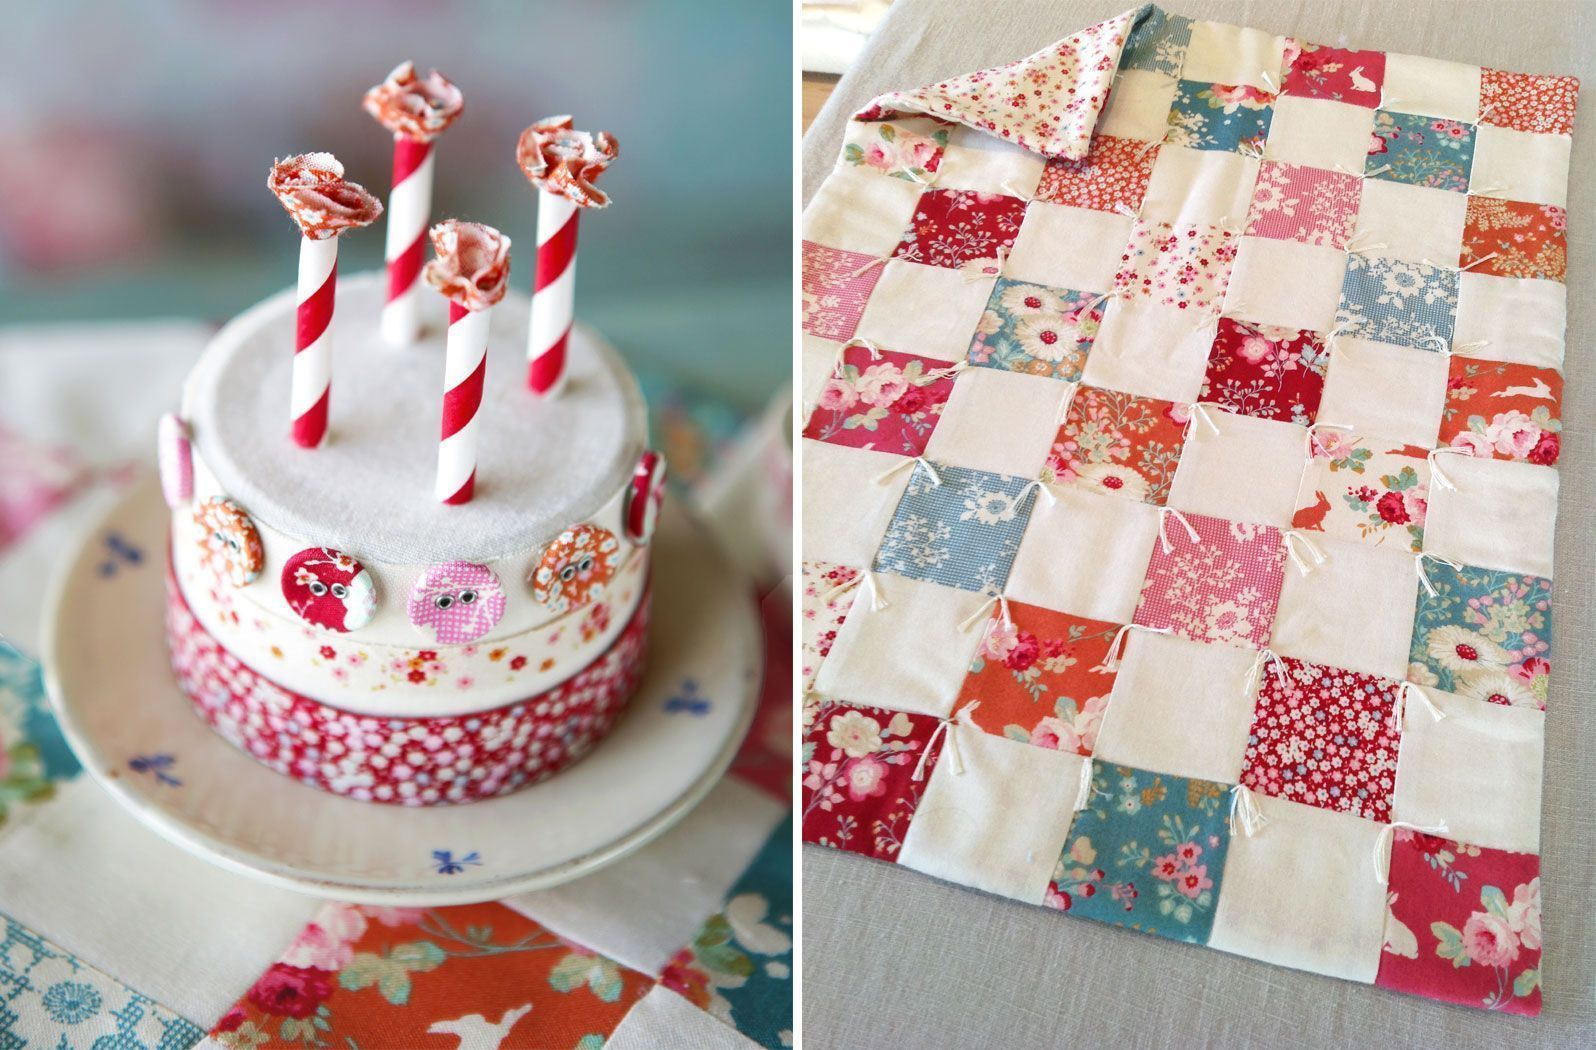 Cake-and-quilt